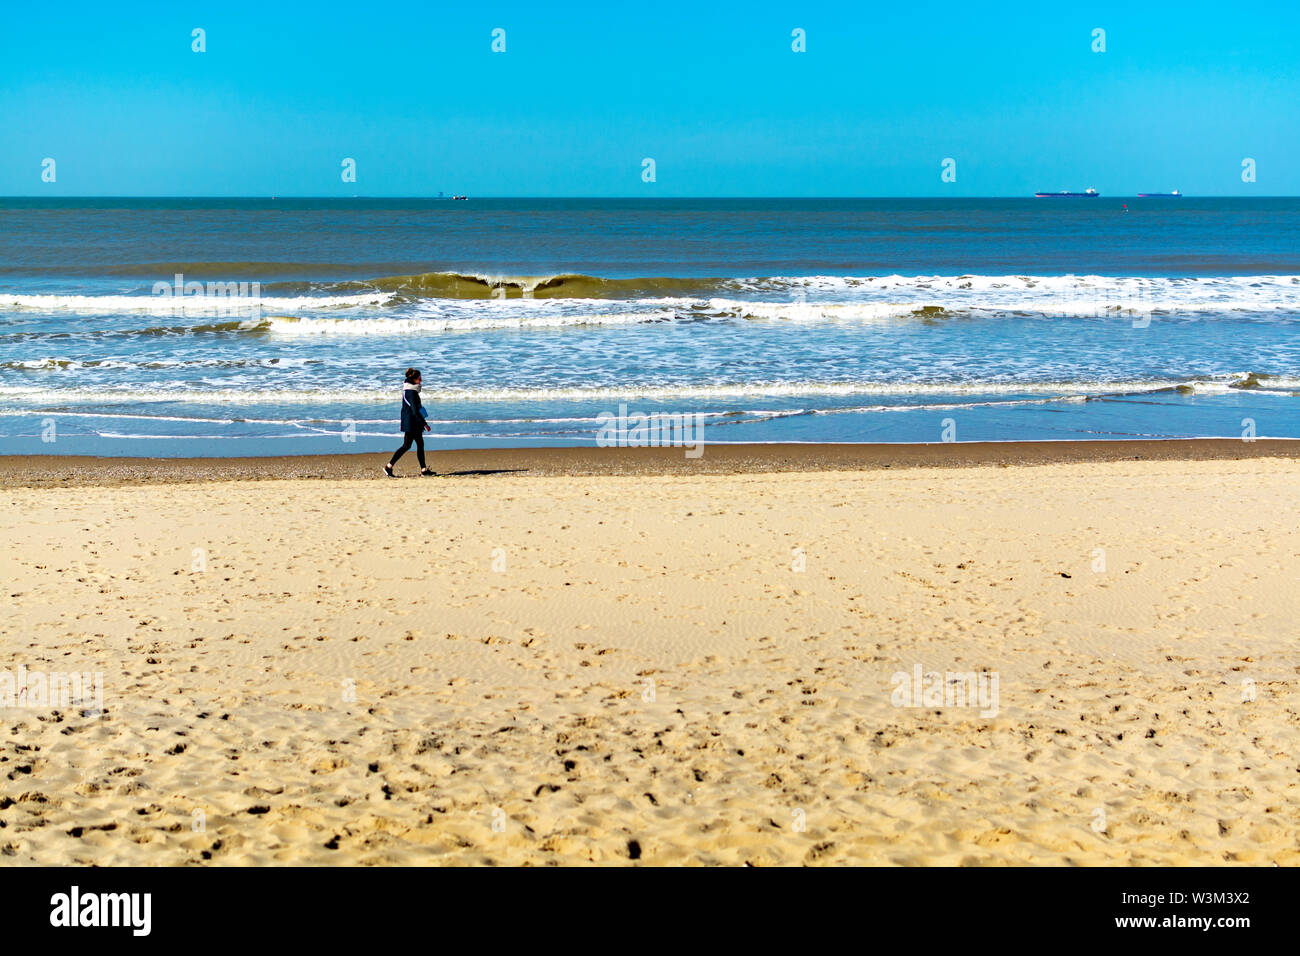 Sunny day on North sea beach in Netherlands near Scheveningen, tourist and vacation destination in Europe - Stock Image